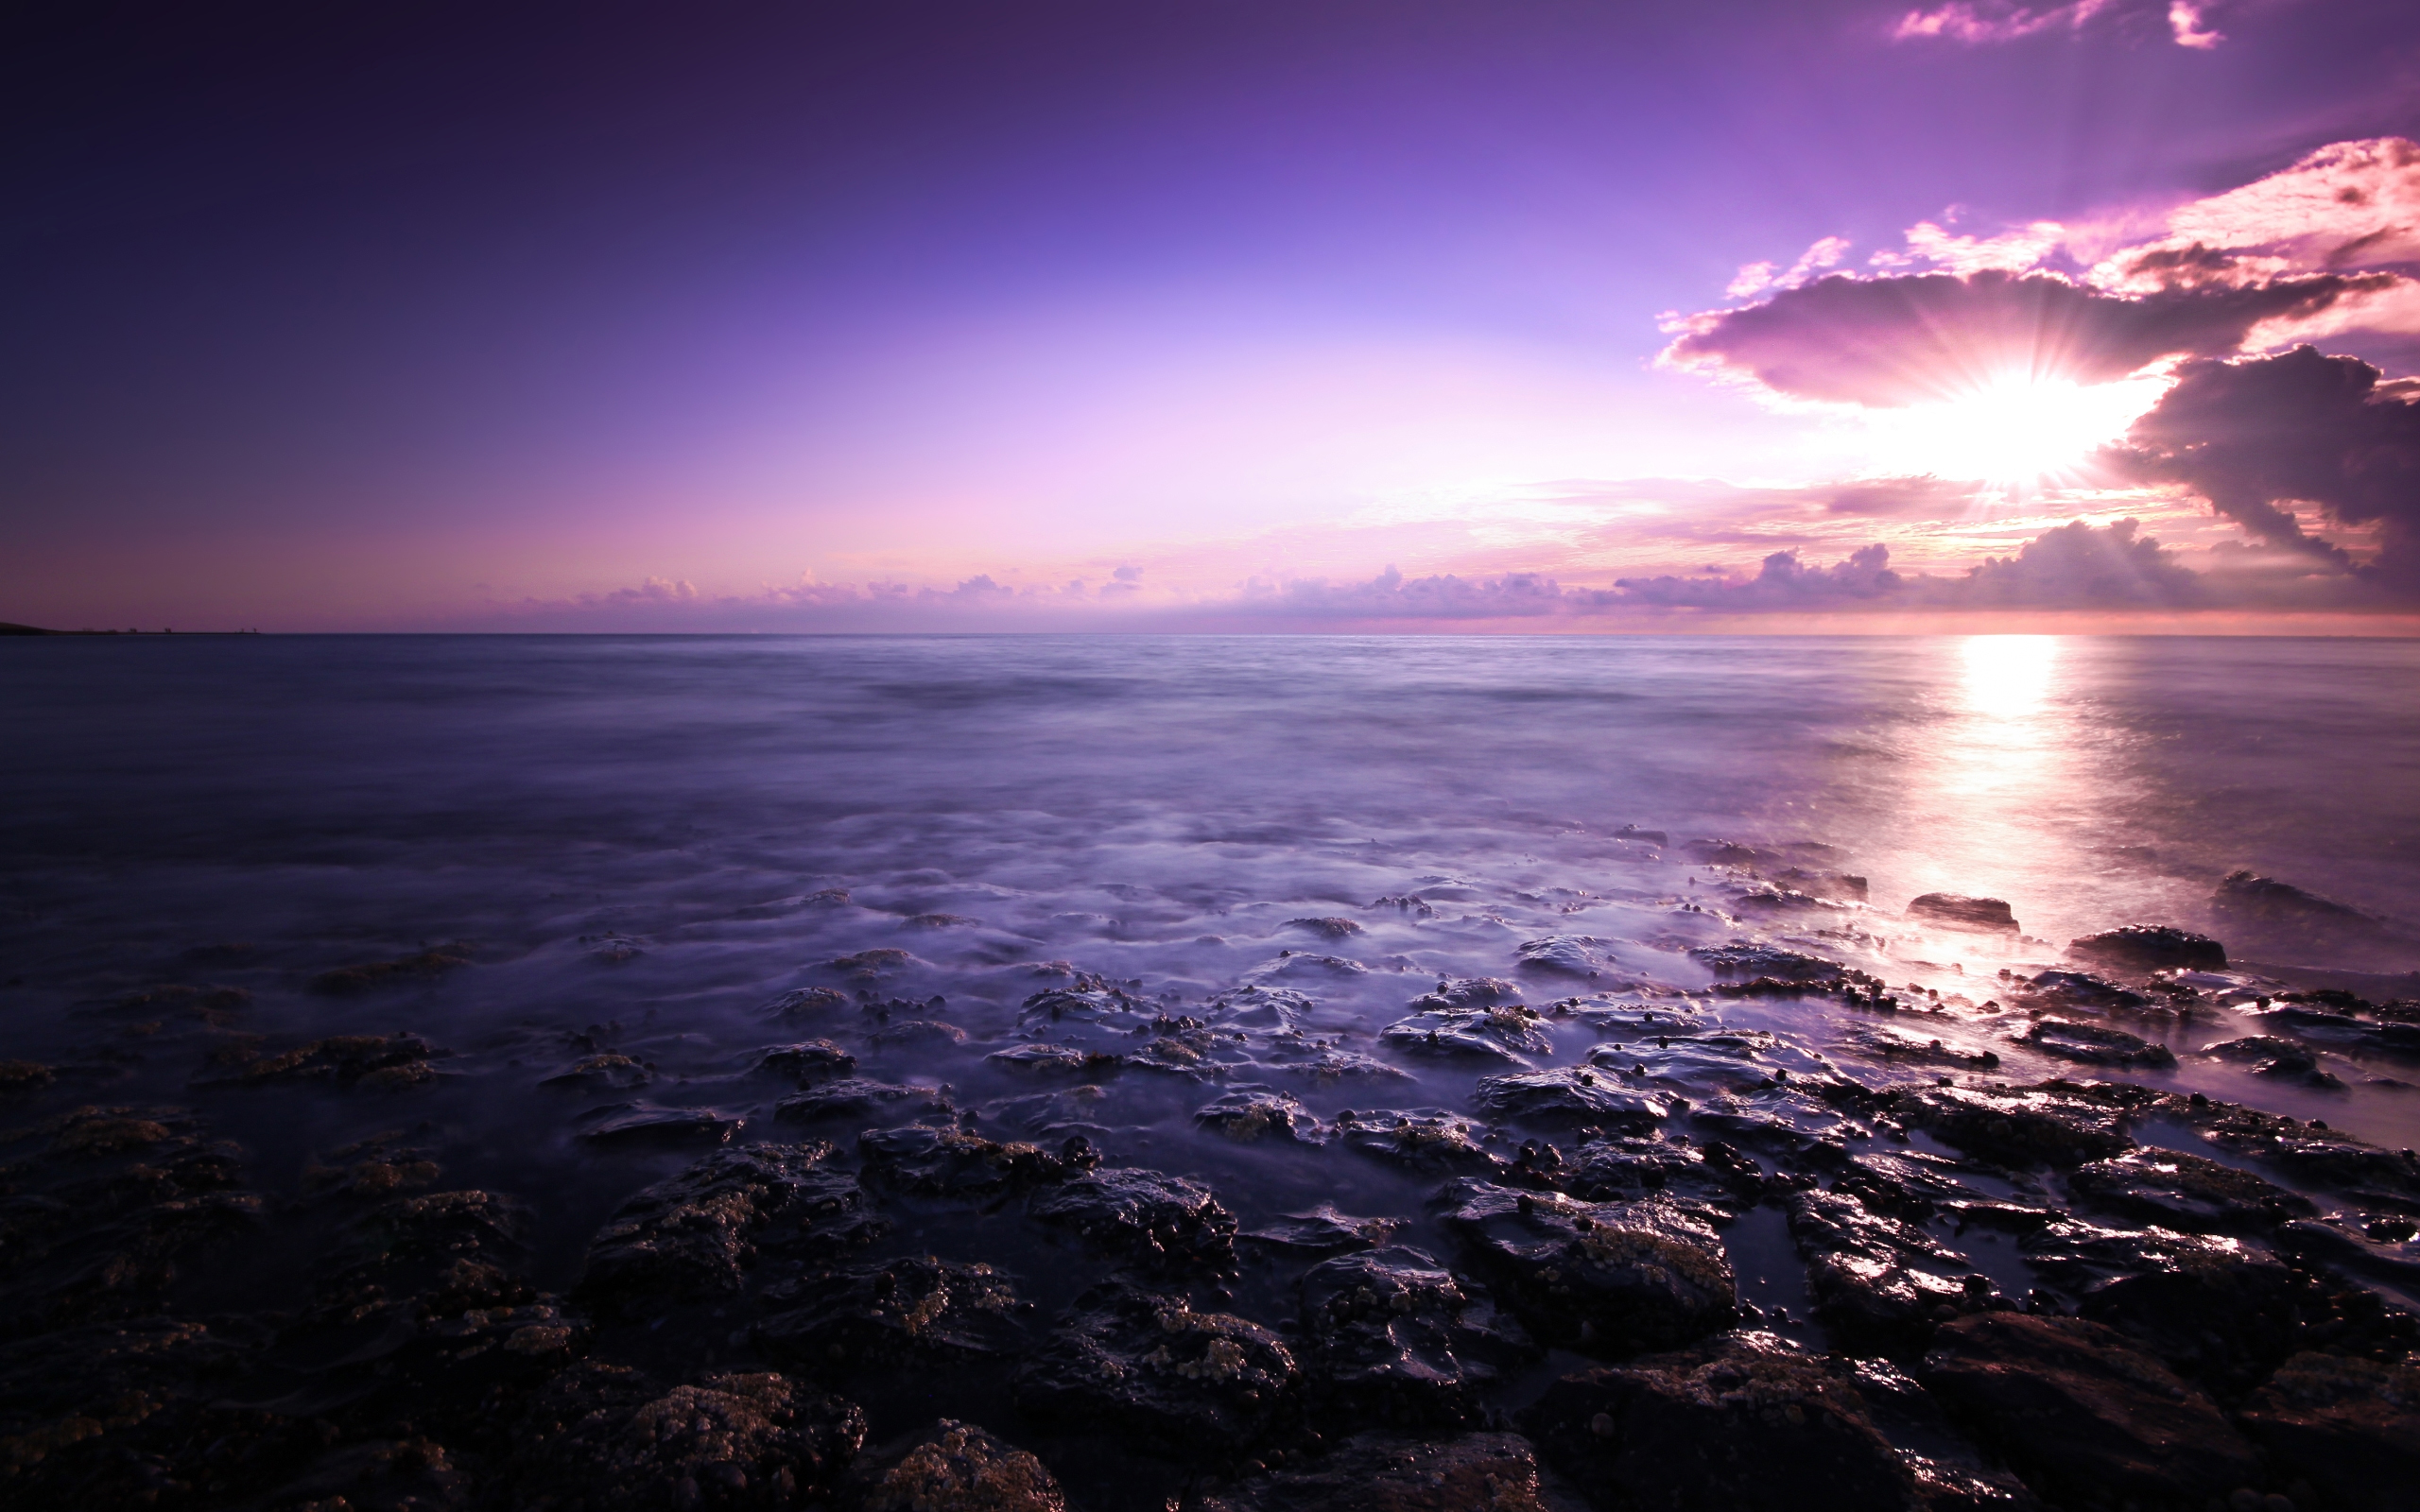 Purple Seascape 1111.39 Kb